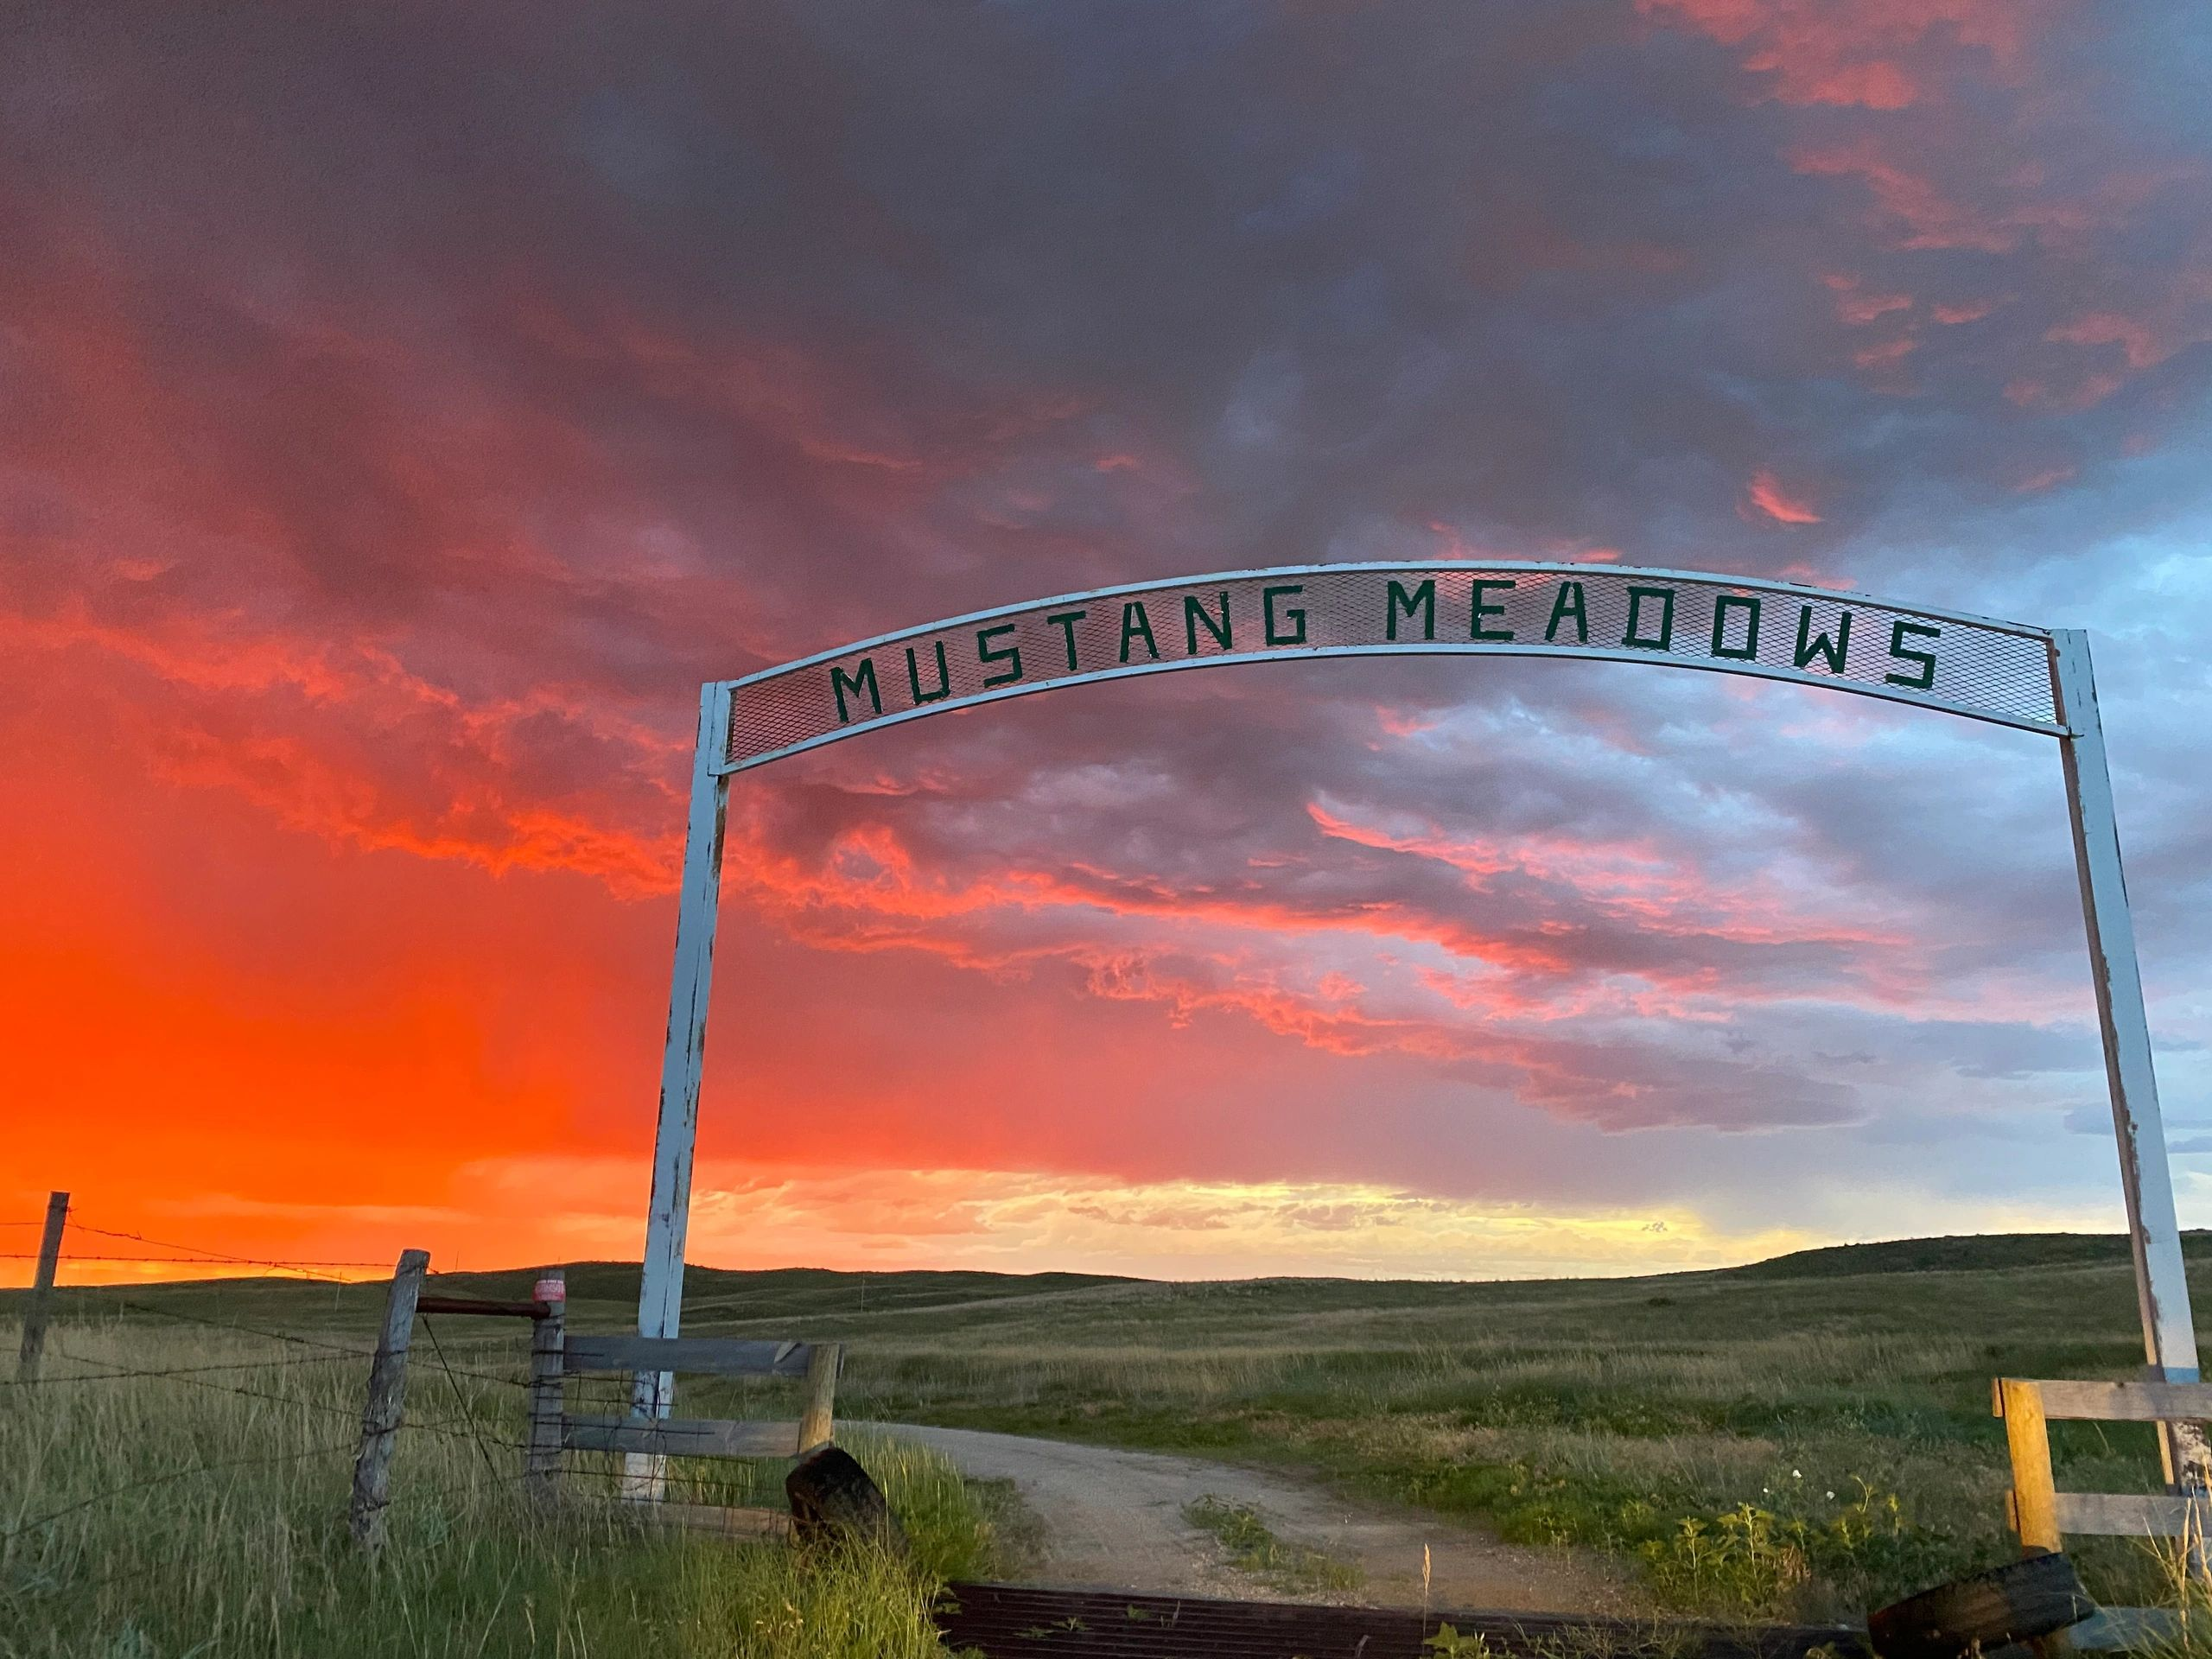 Sunset at Mustang Meadows on the Rosebud Reservation, the site of the Wolakota Buffalo Range